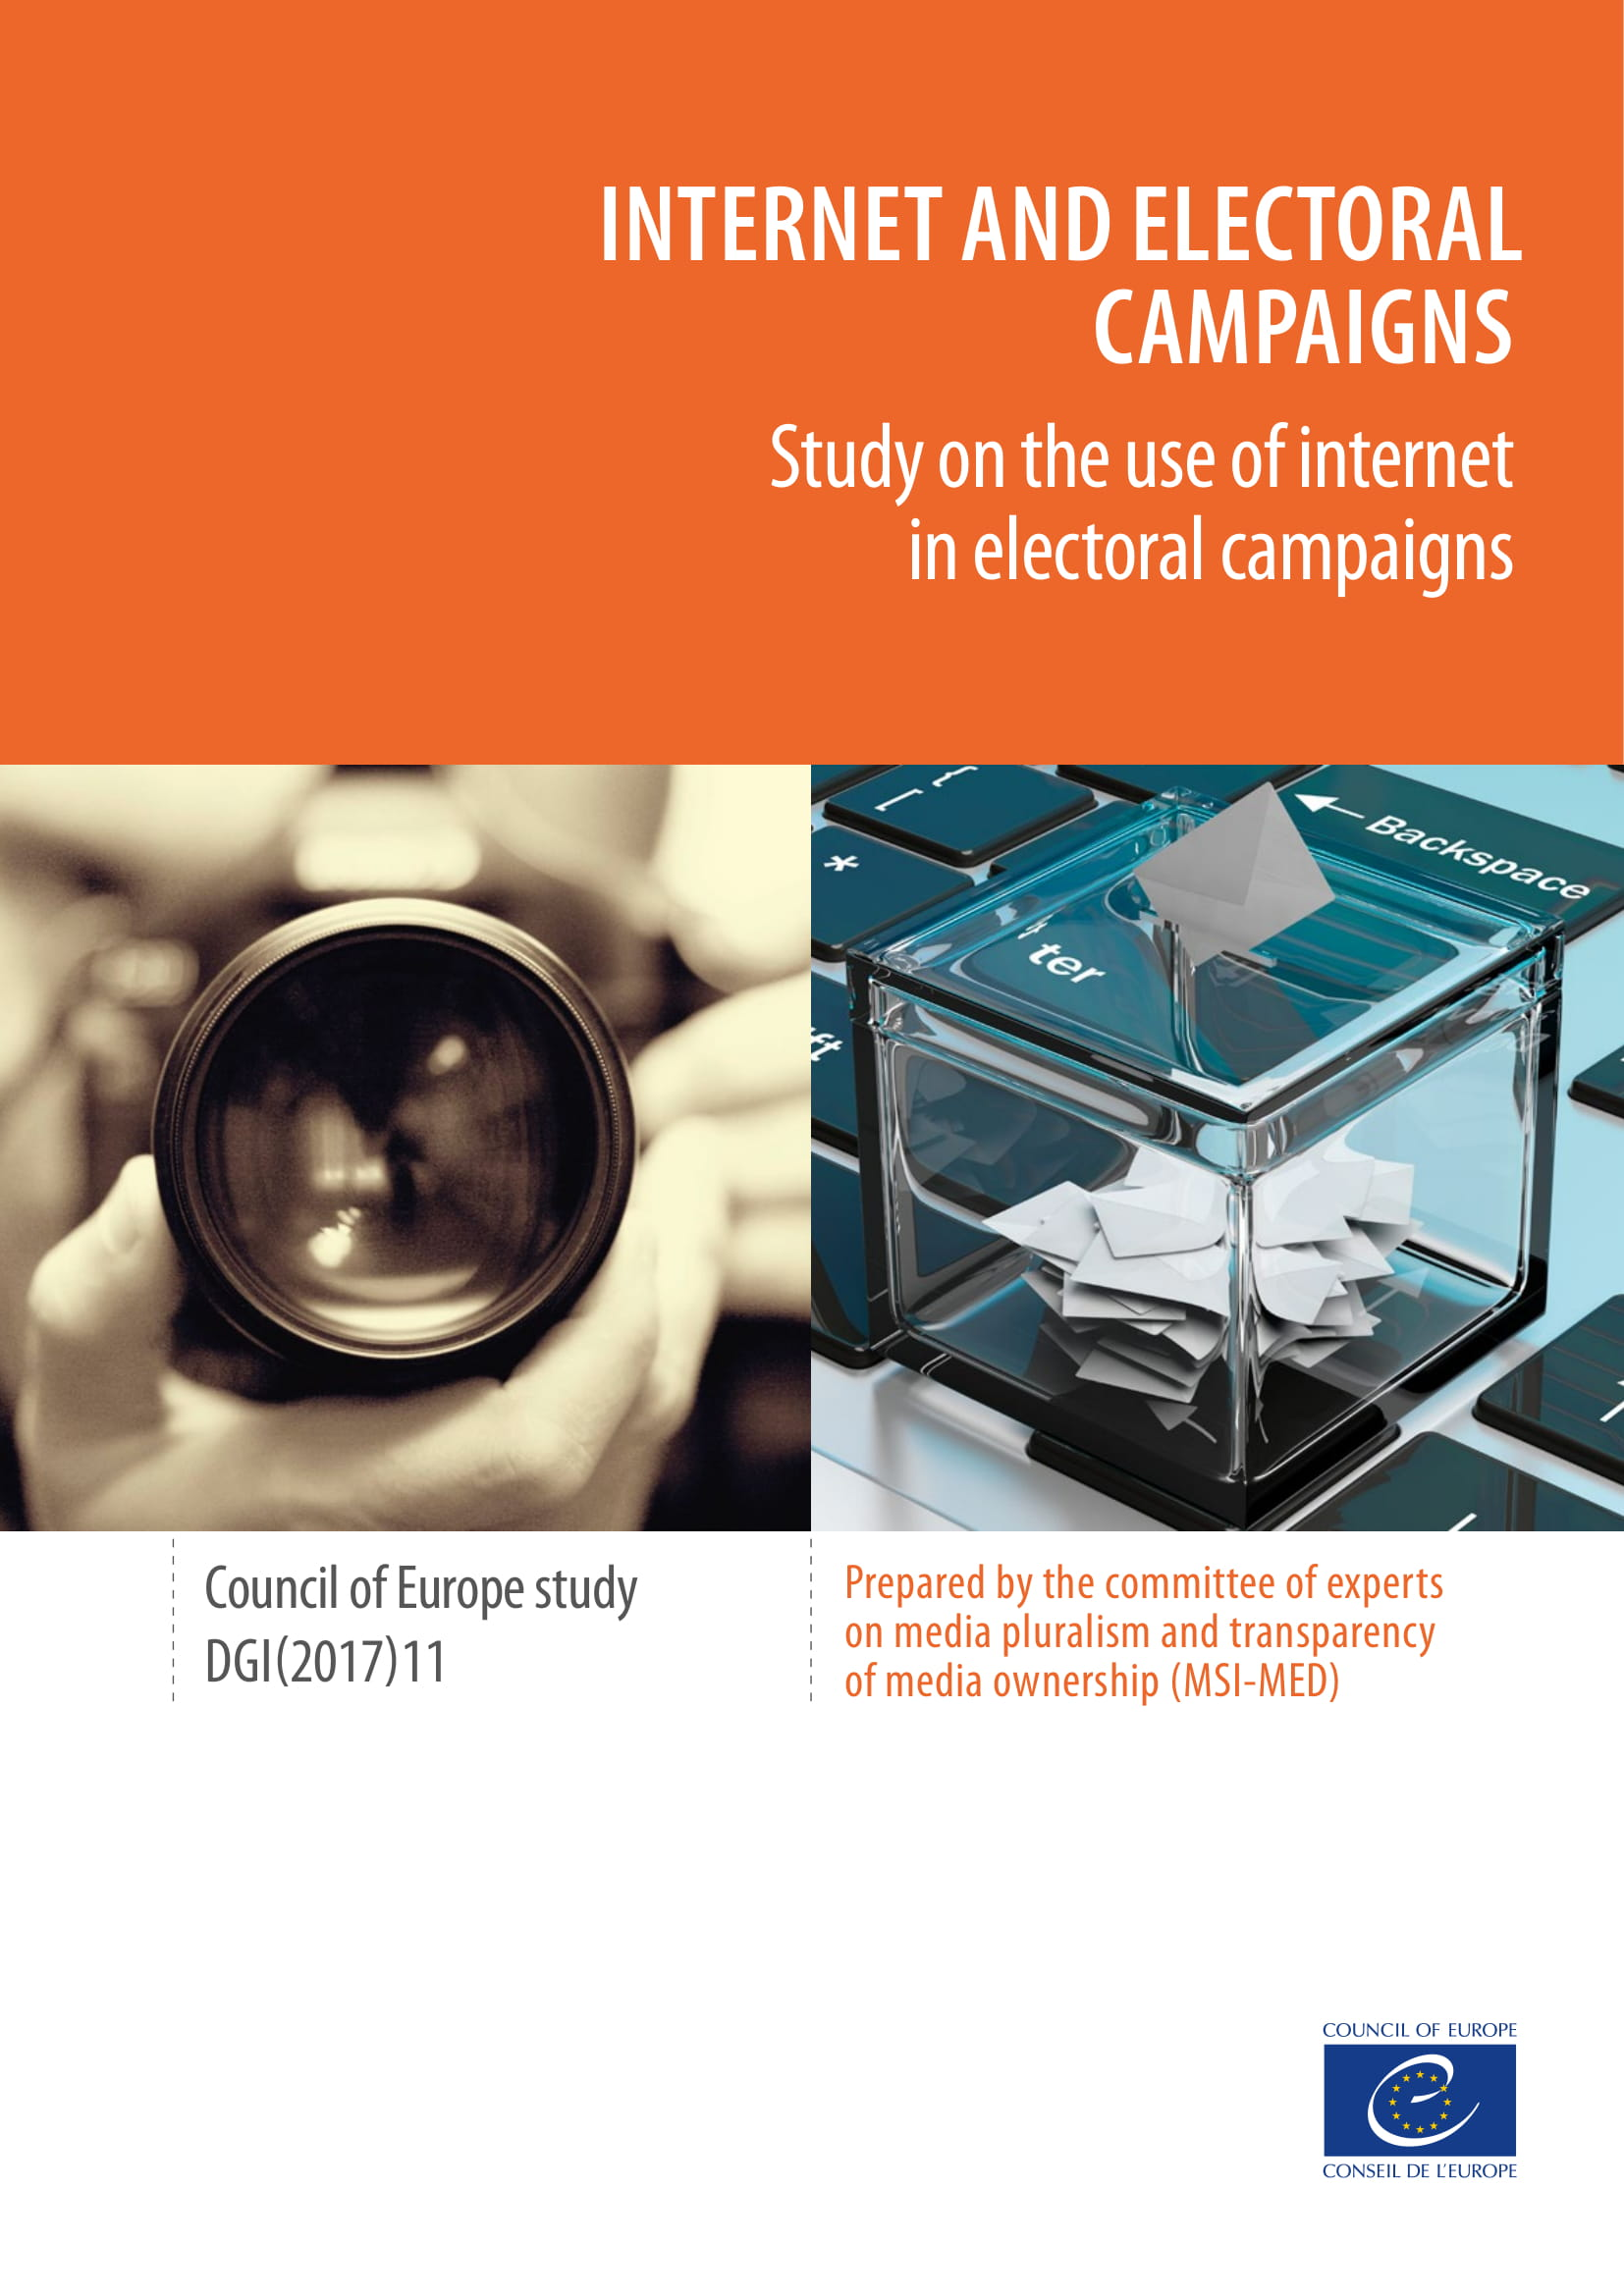 Internet and Electoral Campaigns - Study on the use of internet in electoral campaigns